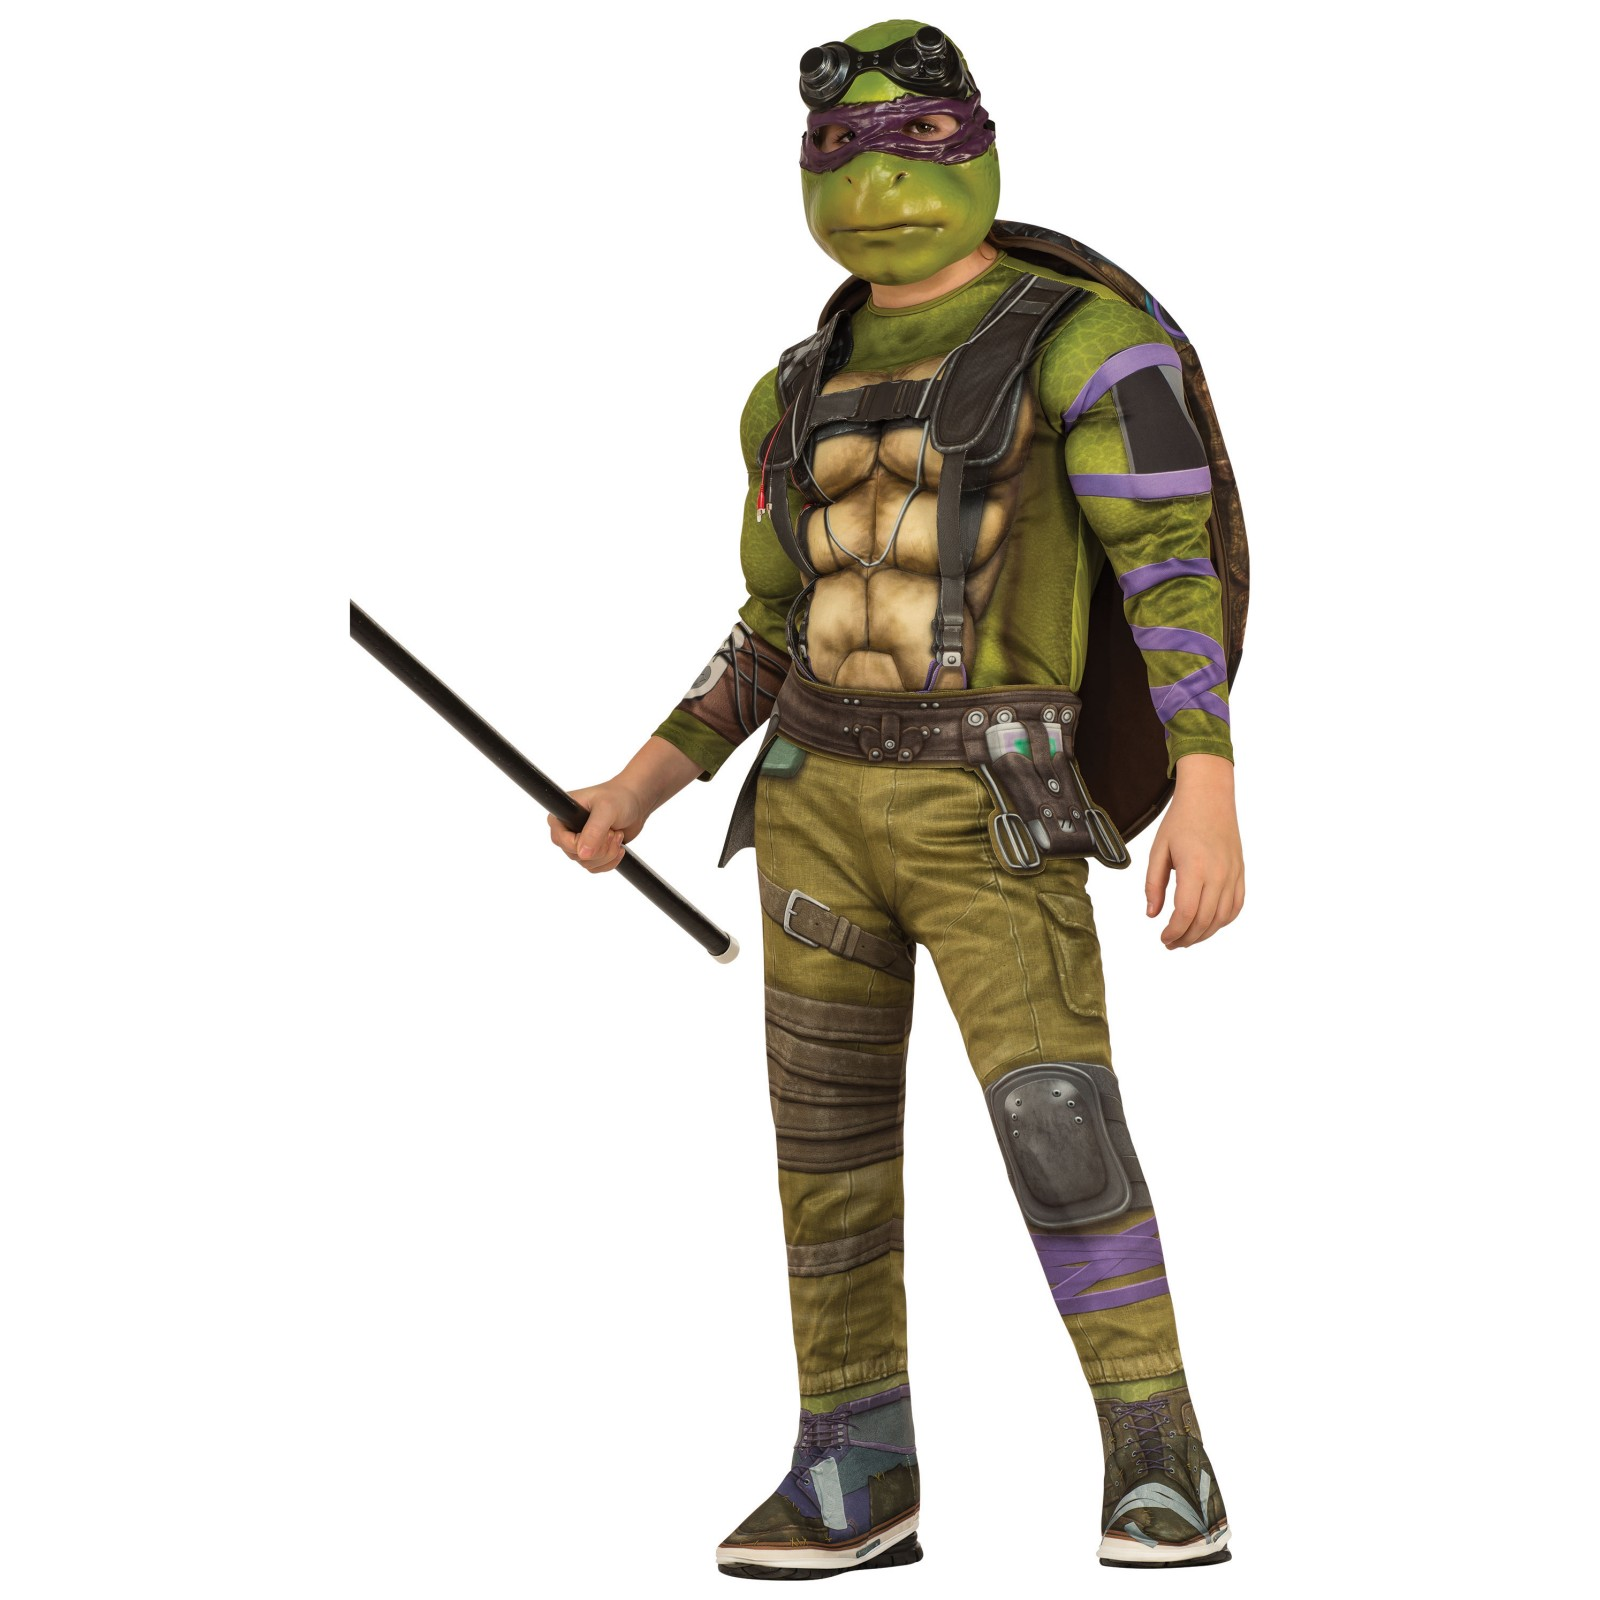 Teenage Mutant Ninja Turtles Movie Deluxe Donatello Costume R630257-M